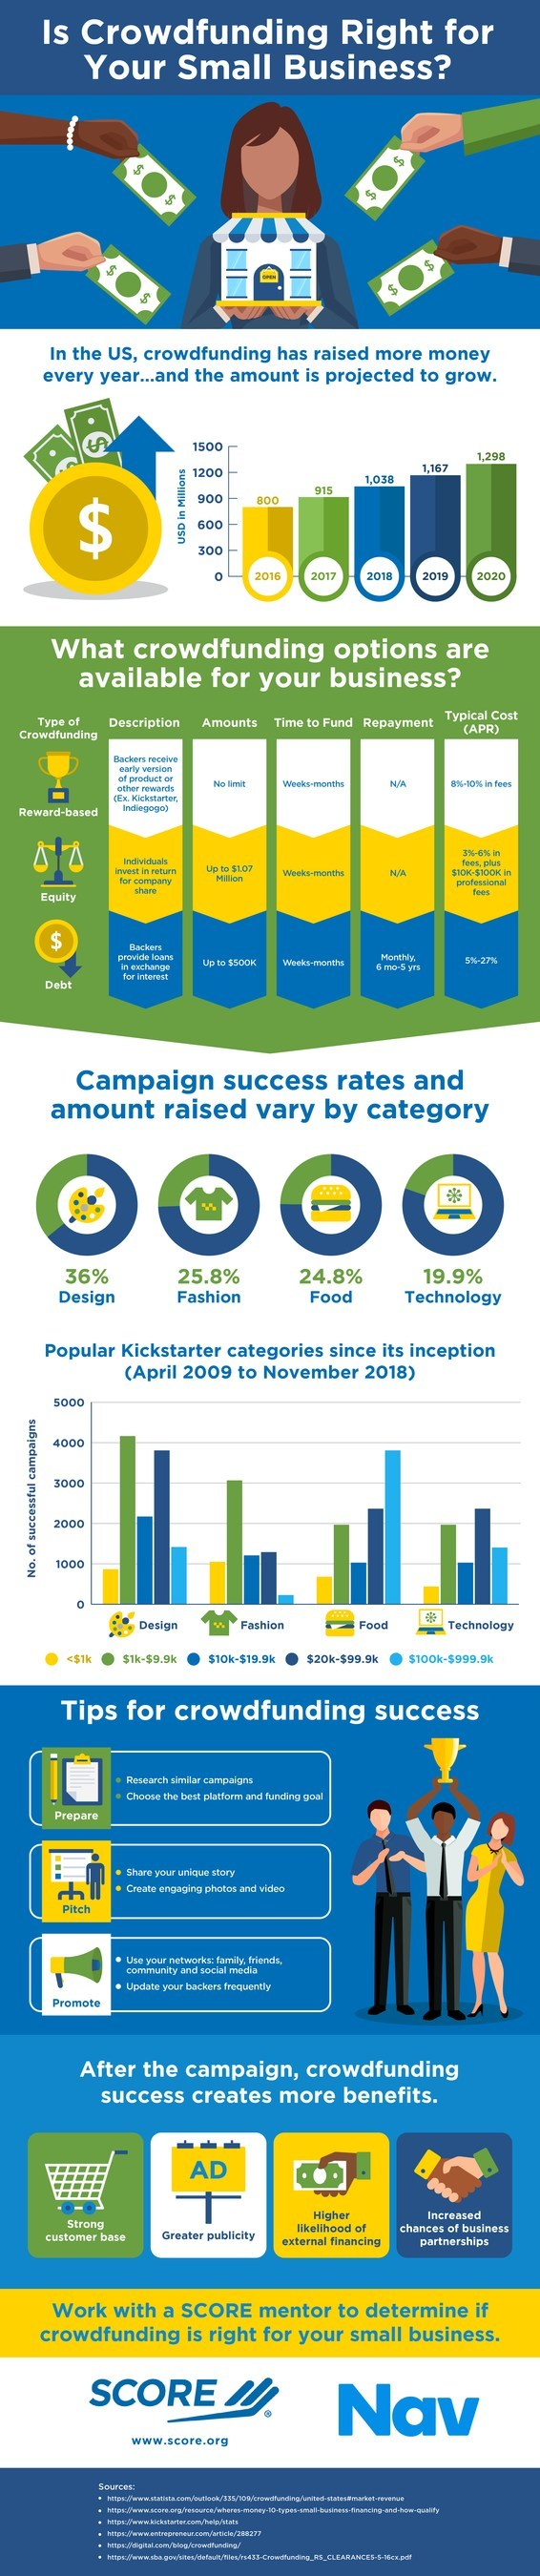 Small businesses are increasingly relying on crowdfunding, according to new survey data from SCORE, the nation's largest network of volunteer, expert business mentors. In 2018, U.S. businesses raised $1.04 billion, a significant increase from the $915 million raised in 2017. SCORE's latest infographic, sponsored by Nav, details recent trends and projections in crowdfunding for small businesses.